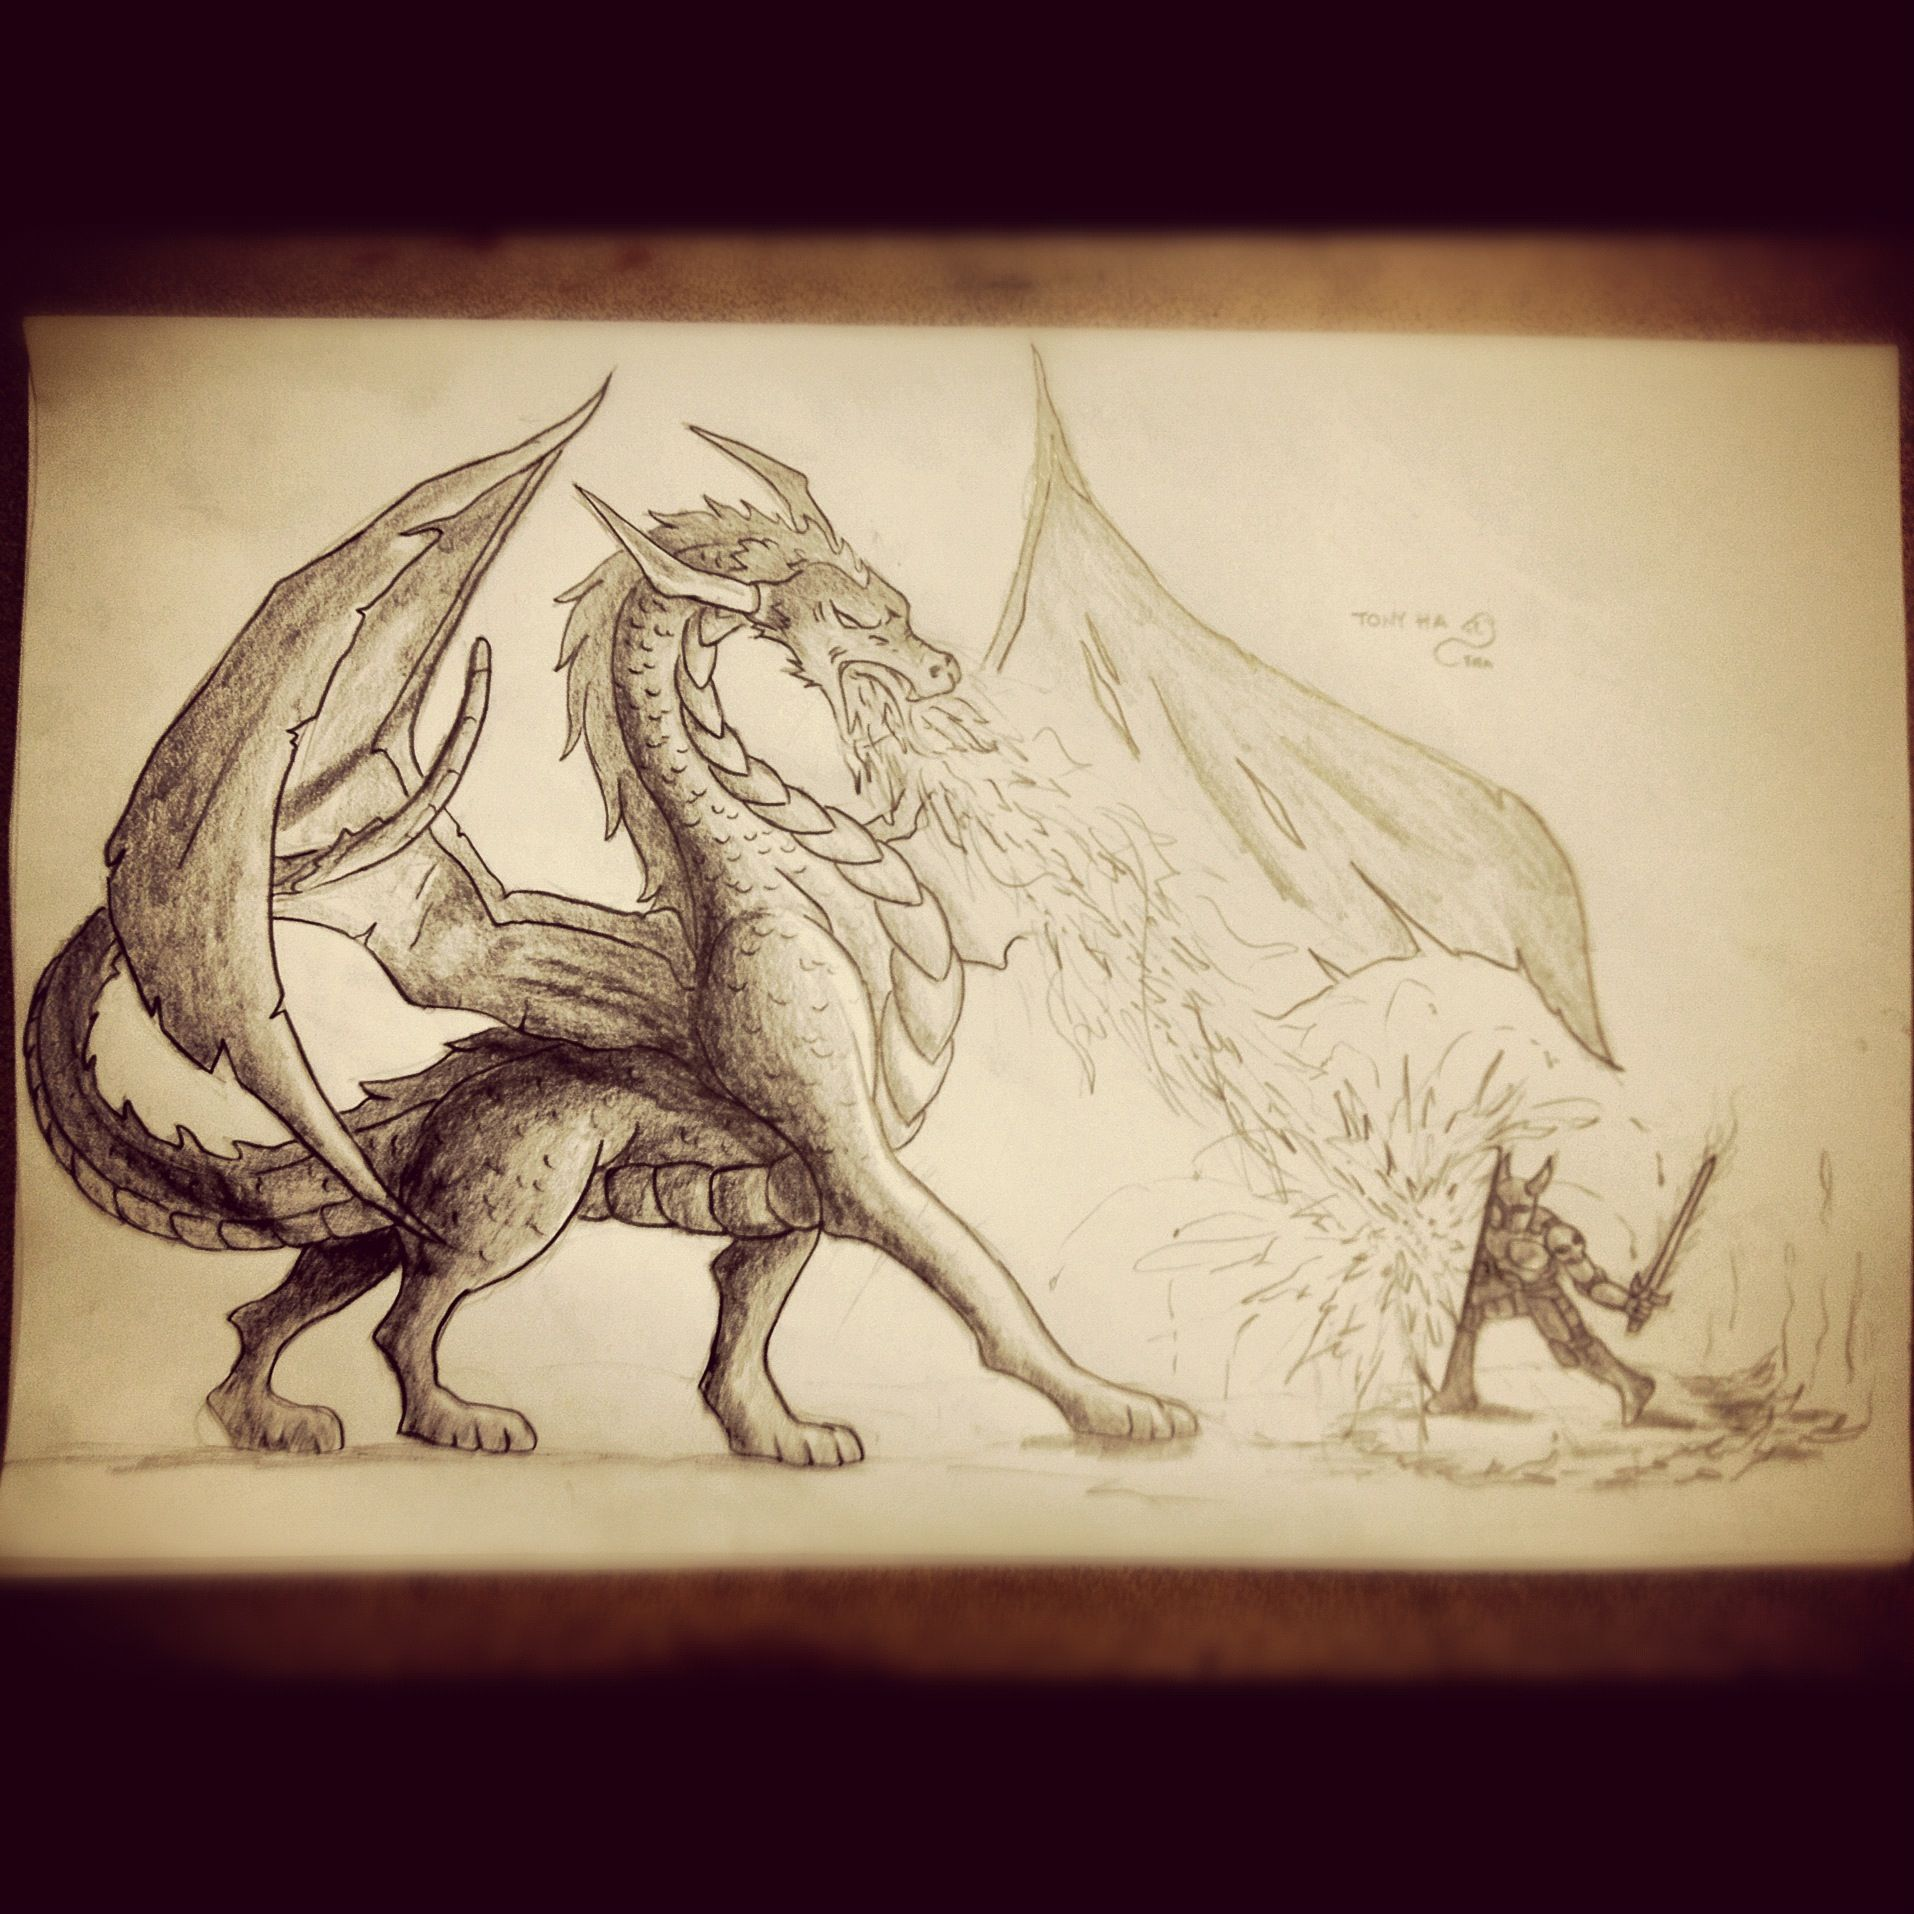 Pencil sketch of dragon vs knight learn to draw pencil drawings art drawings